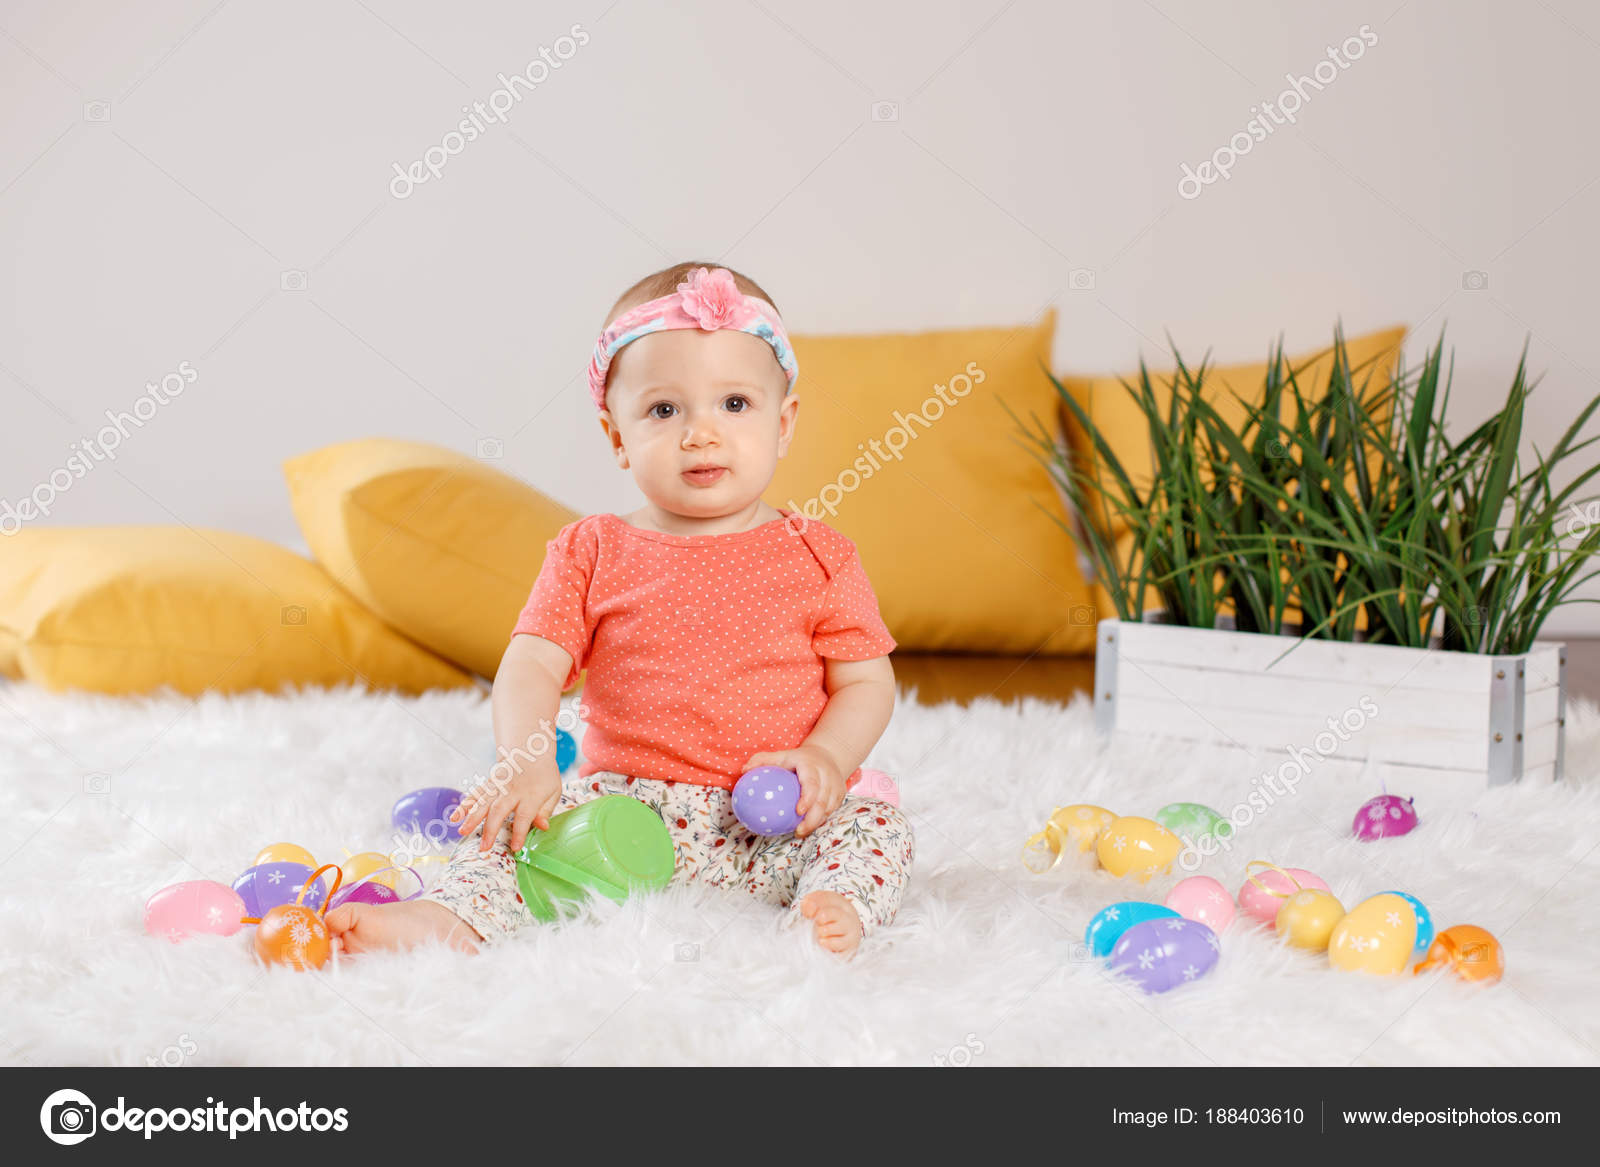 a3ba89377e4 Cute adorable Caucasian baby girl in red onesie t-shirt sitting on white  soft fluffy rug carpet in studio. Kid child playing with Easter colorful  eggs ...